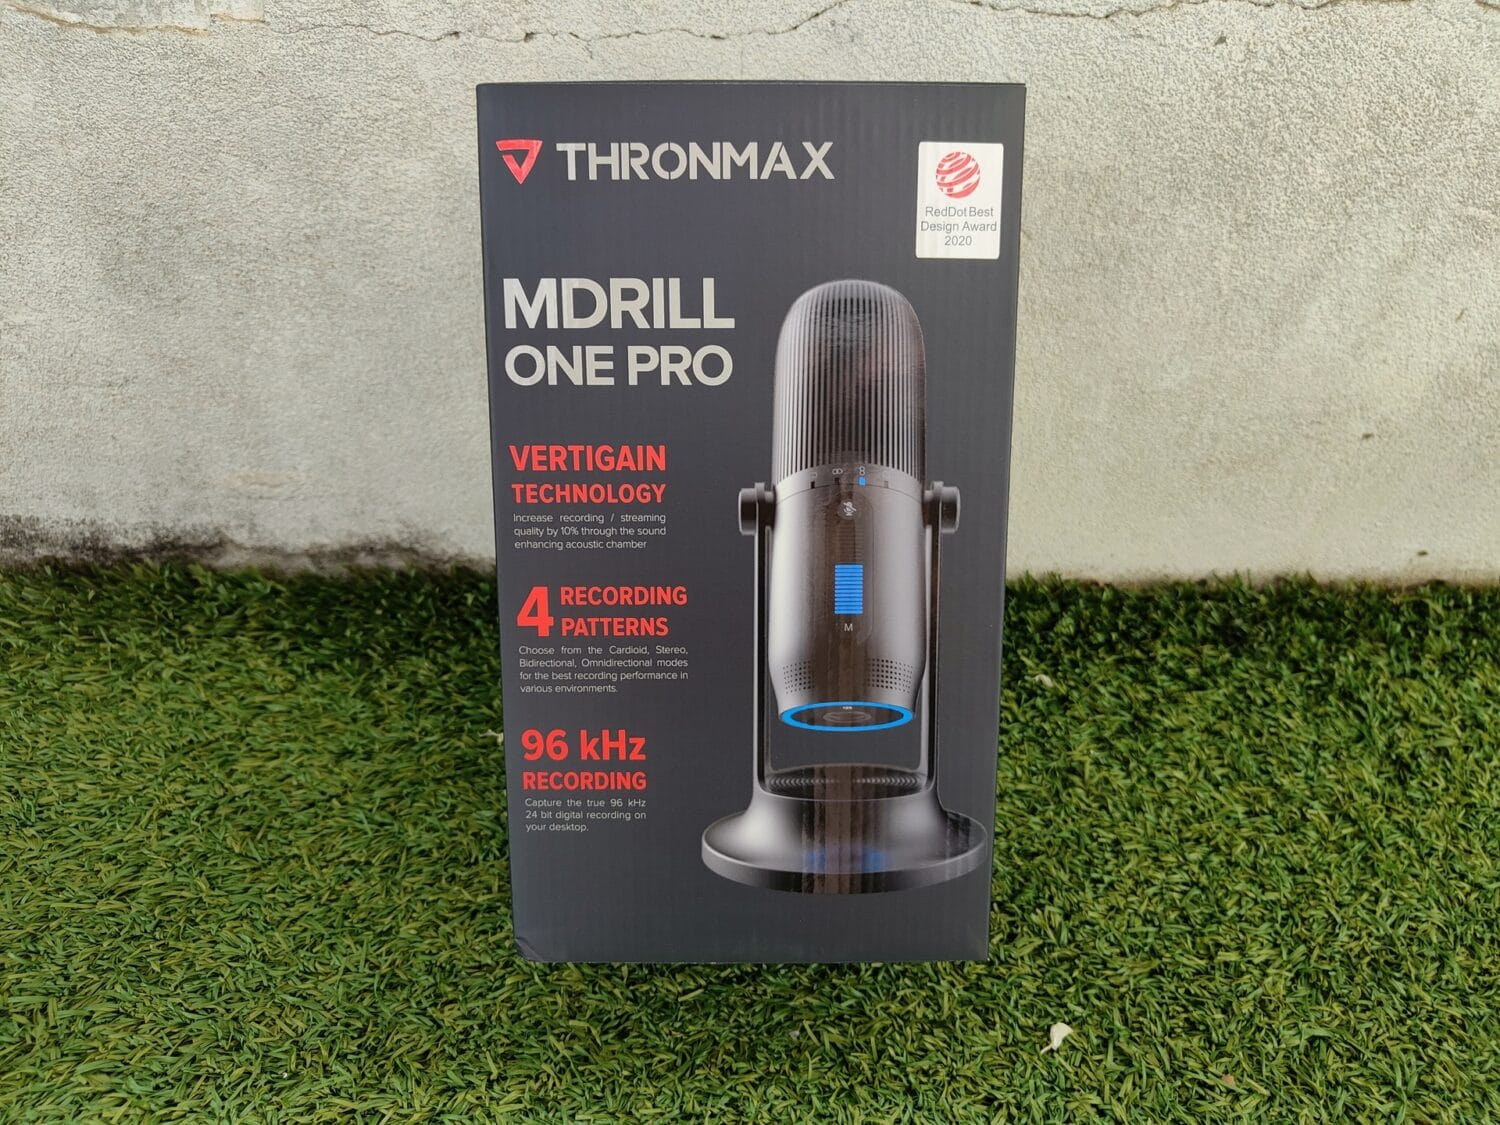 Thronmax MDRILL One Pro